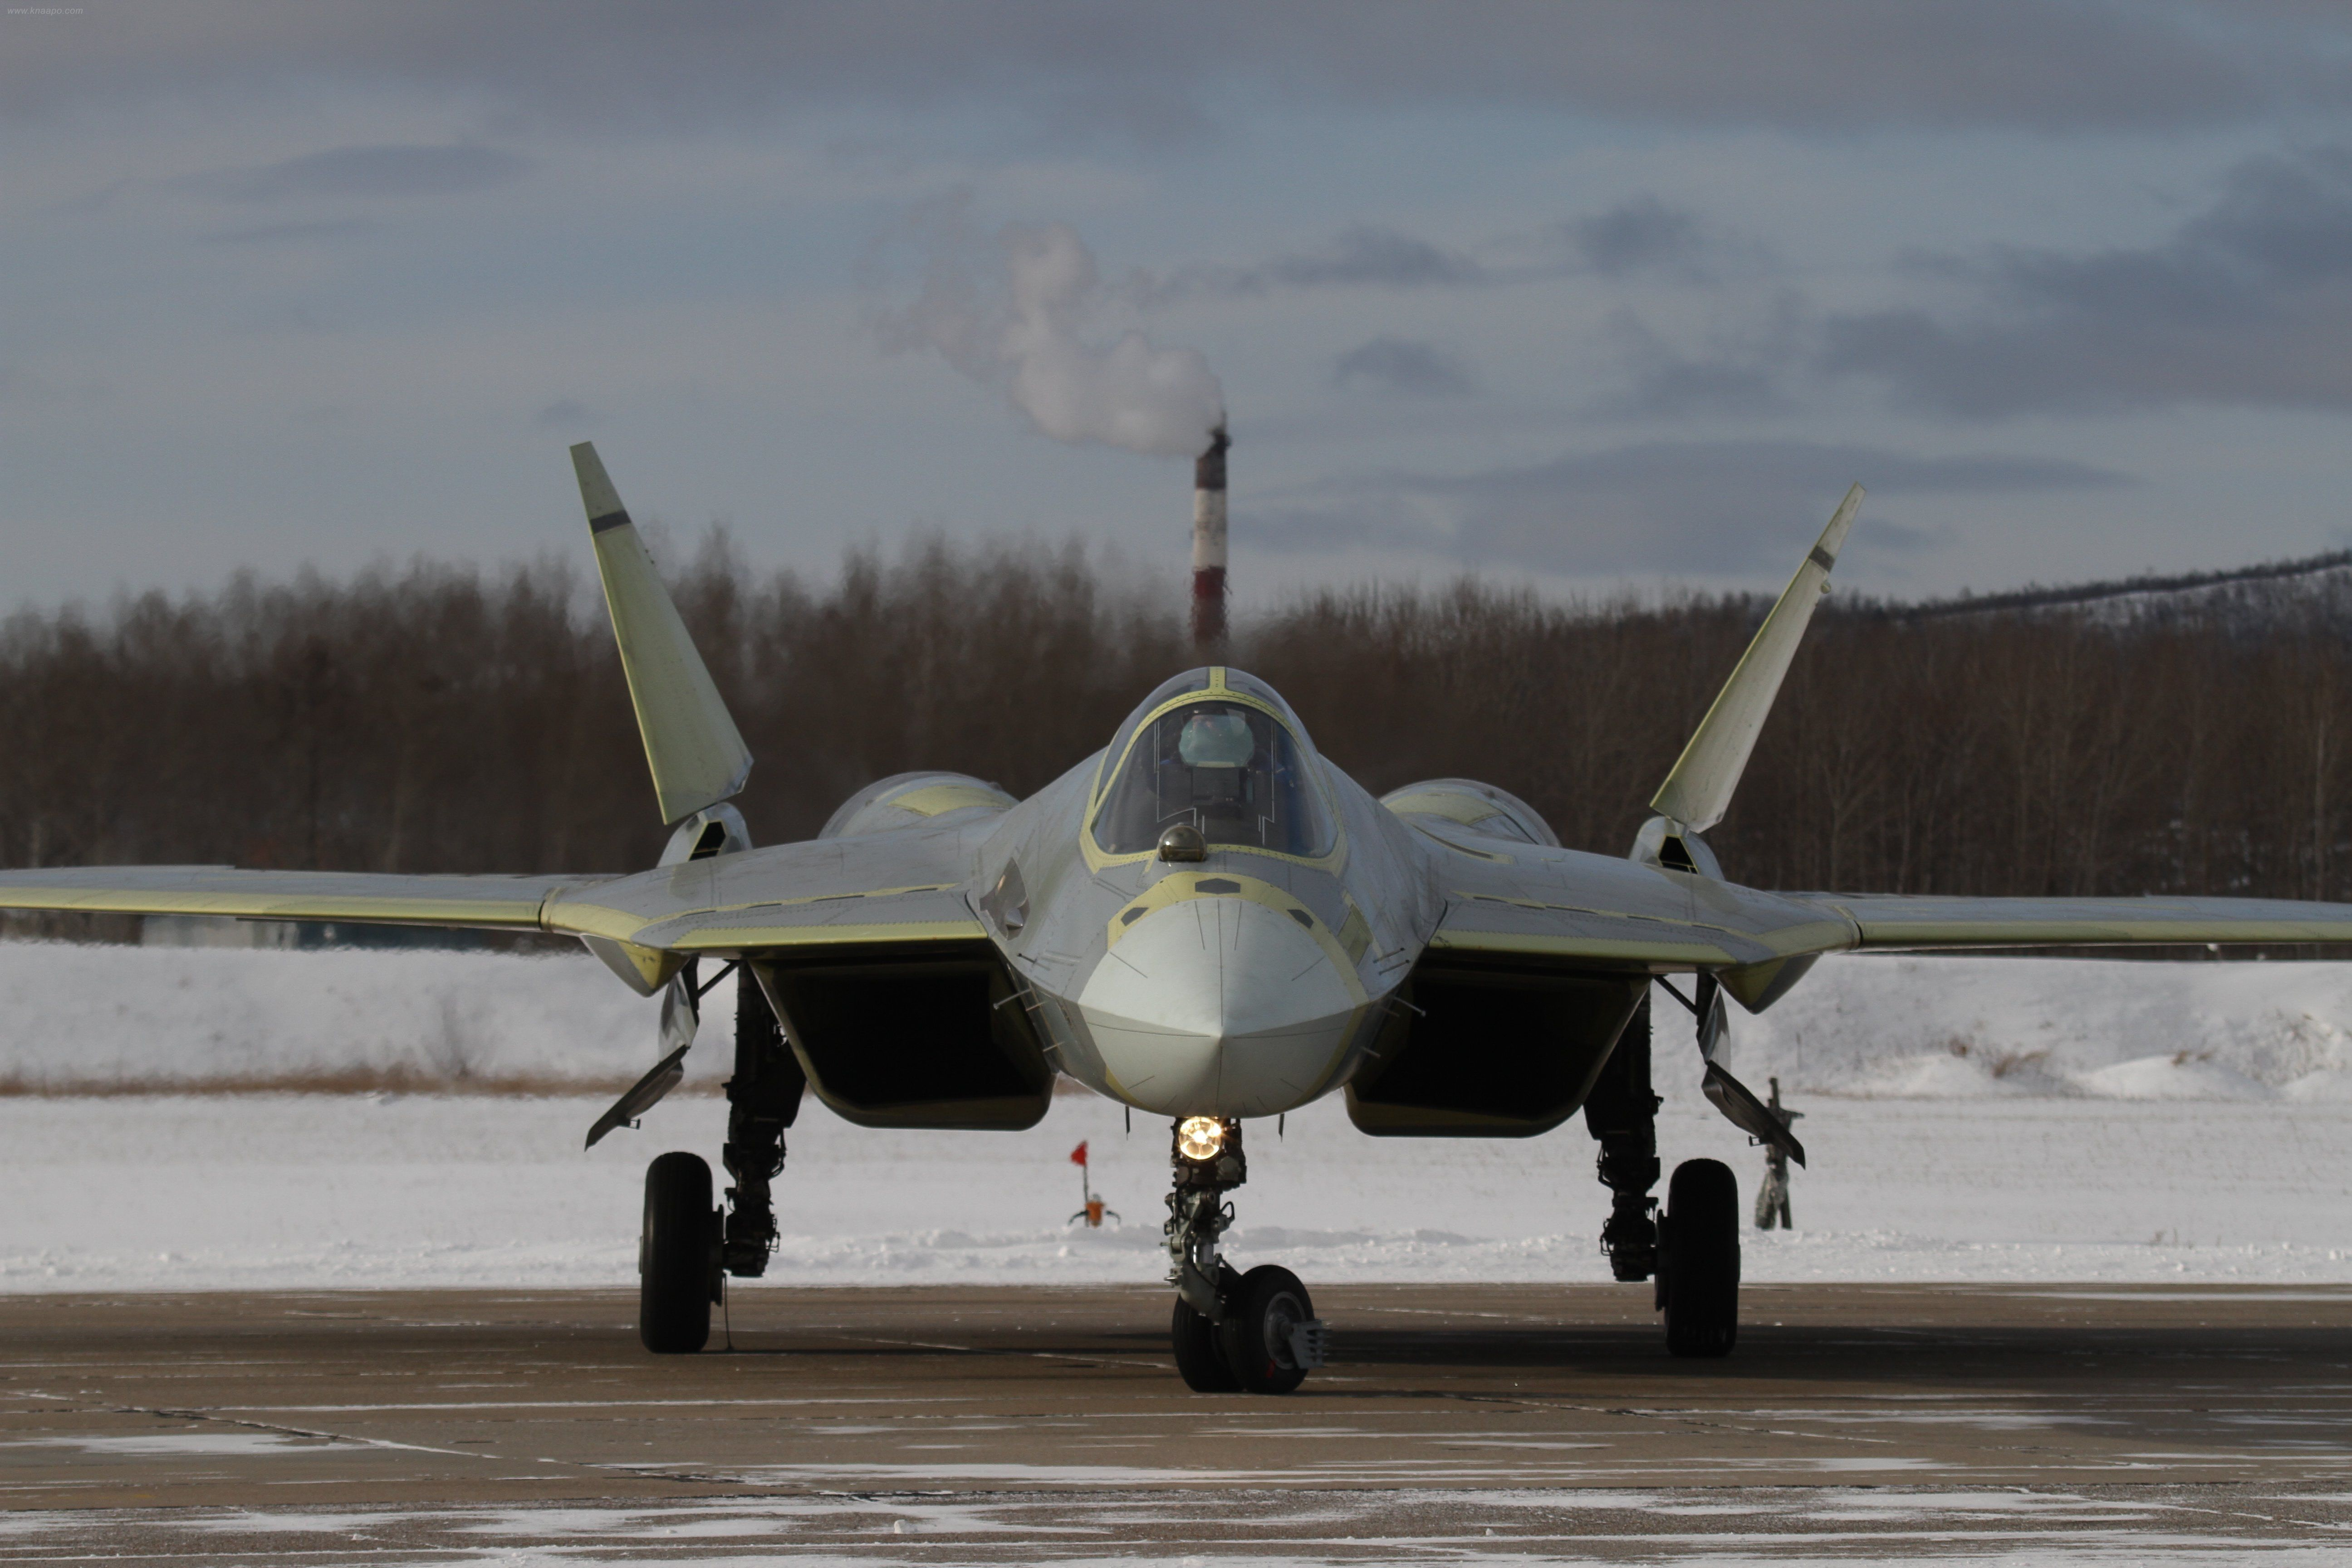 50 sukhoi t 50 pak fa wallpapers hd desktop and mobile backgrounds - T 50 Pak Fa Fifth Generation Fighter Aircraft